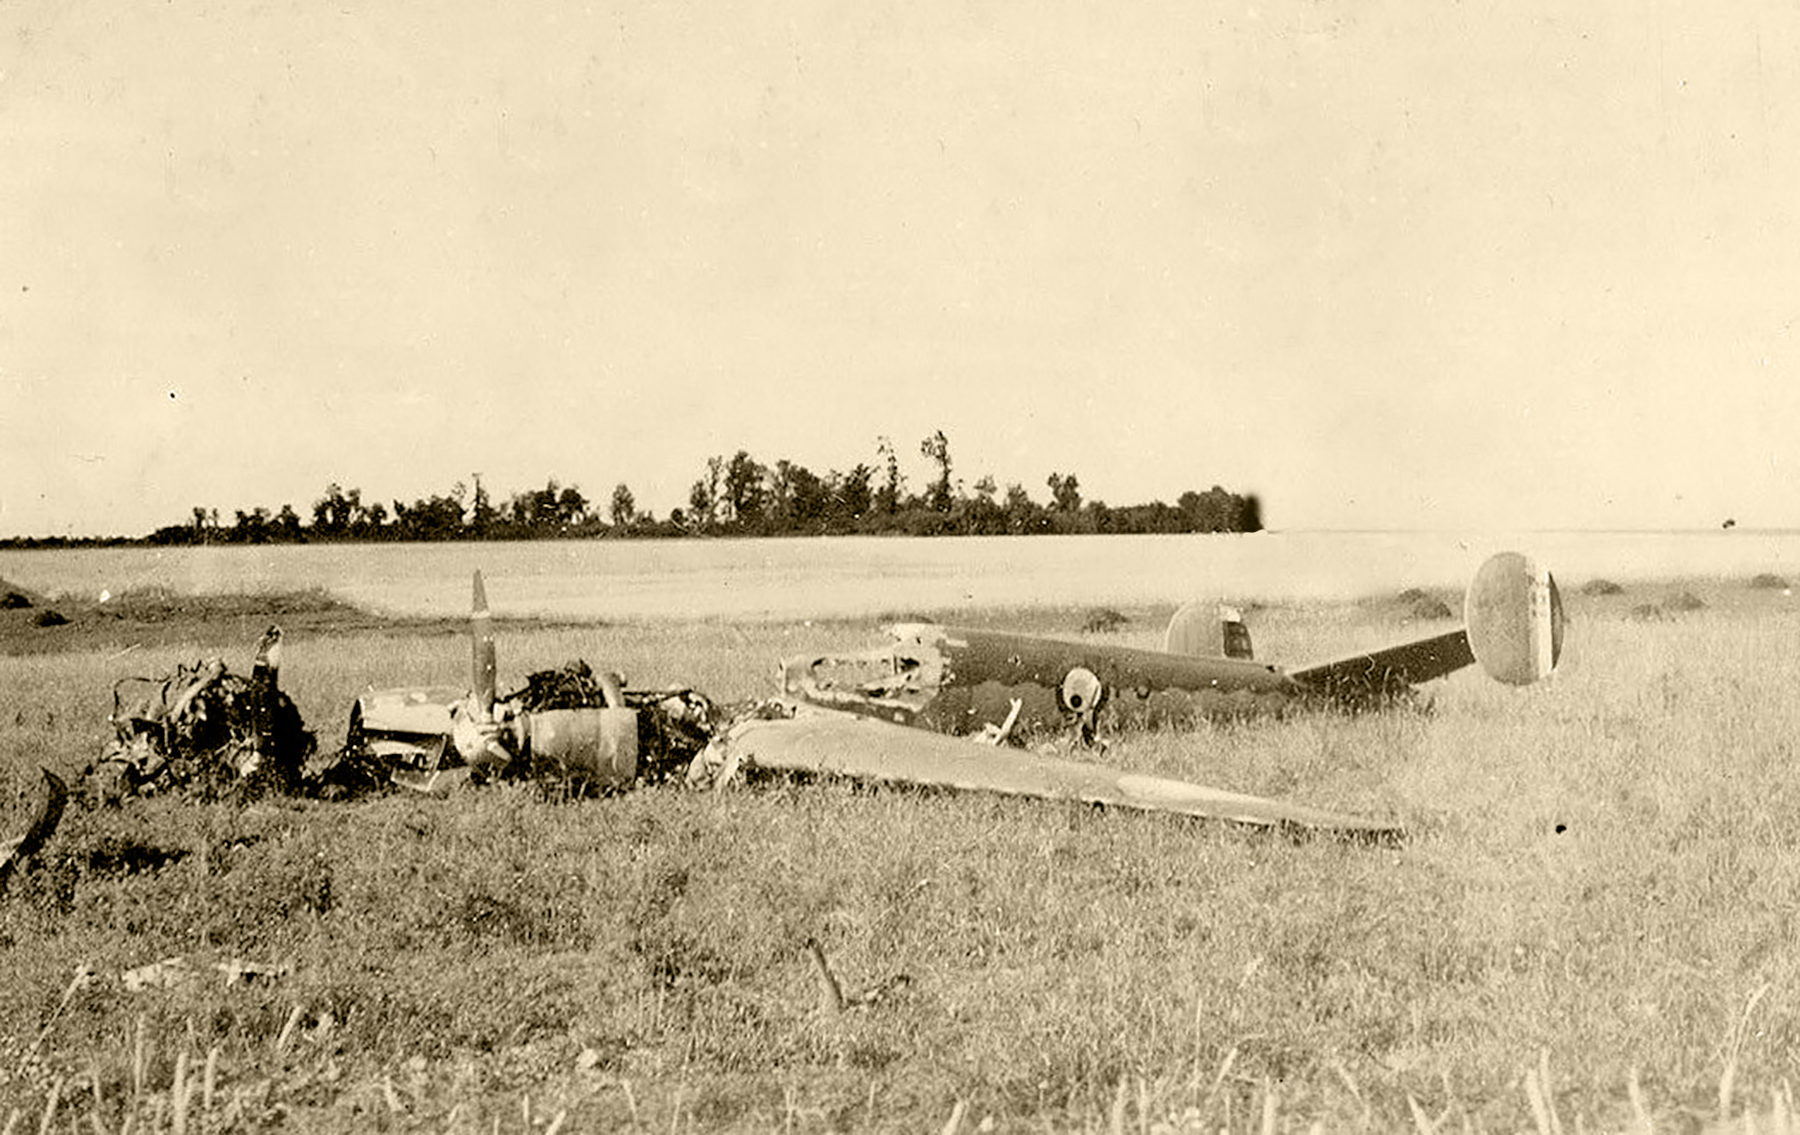 French Airforce Potez 630 shot down during the air war over France 1940 ebay 01